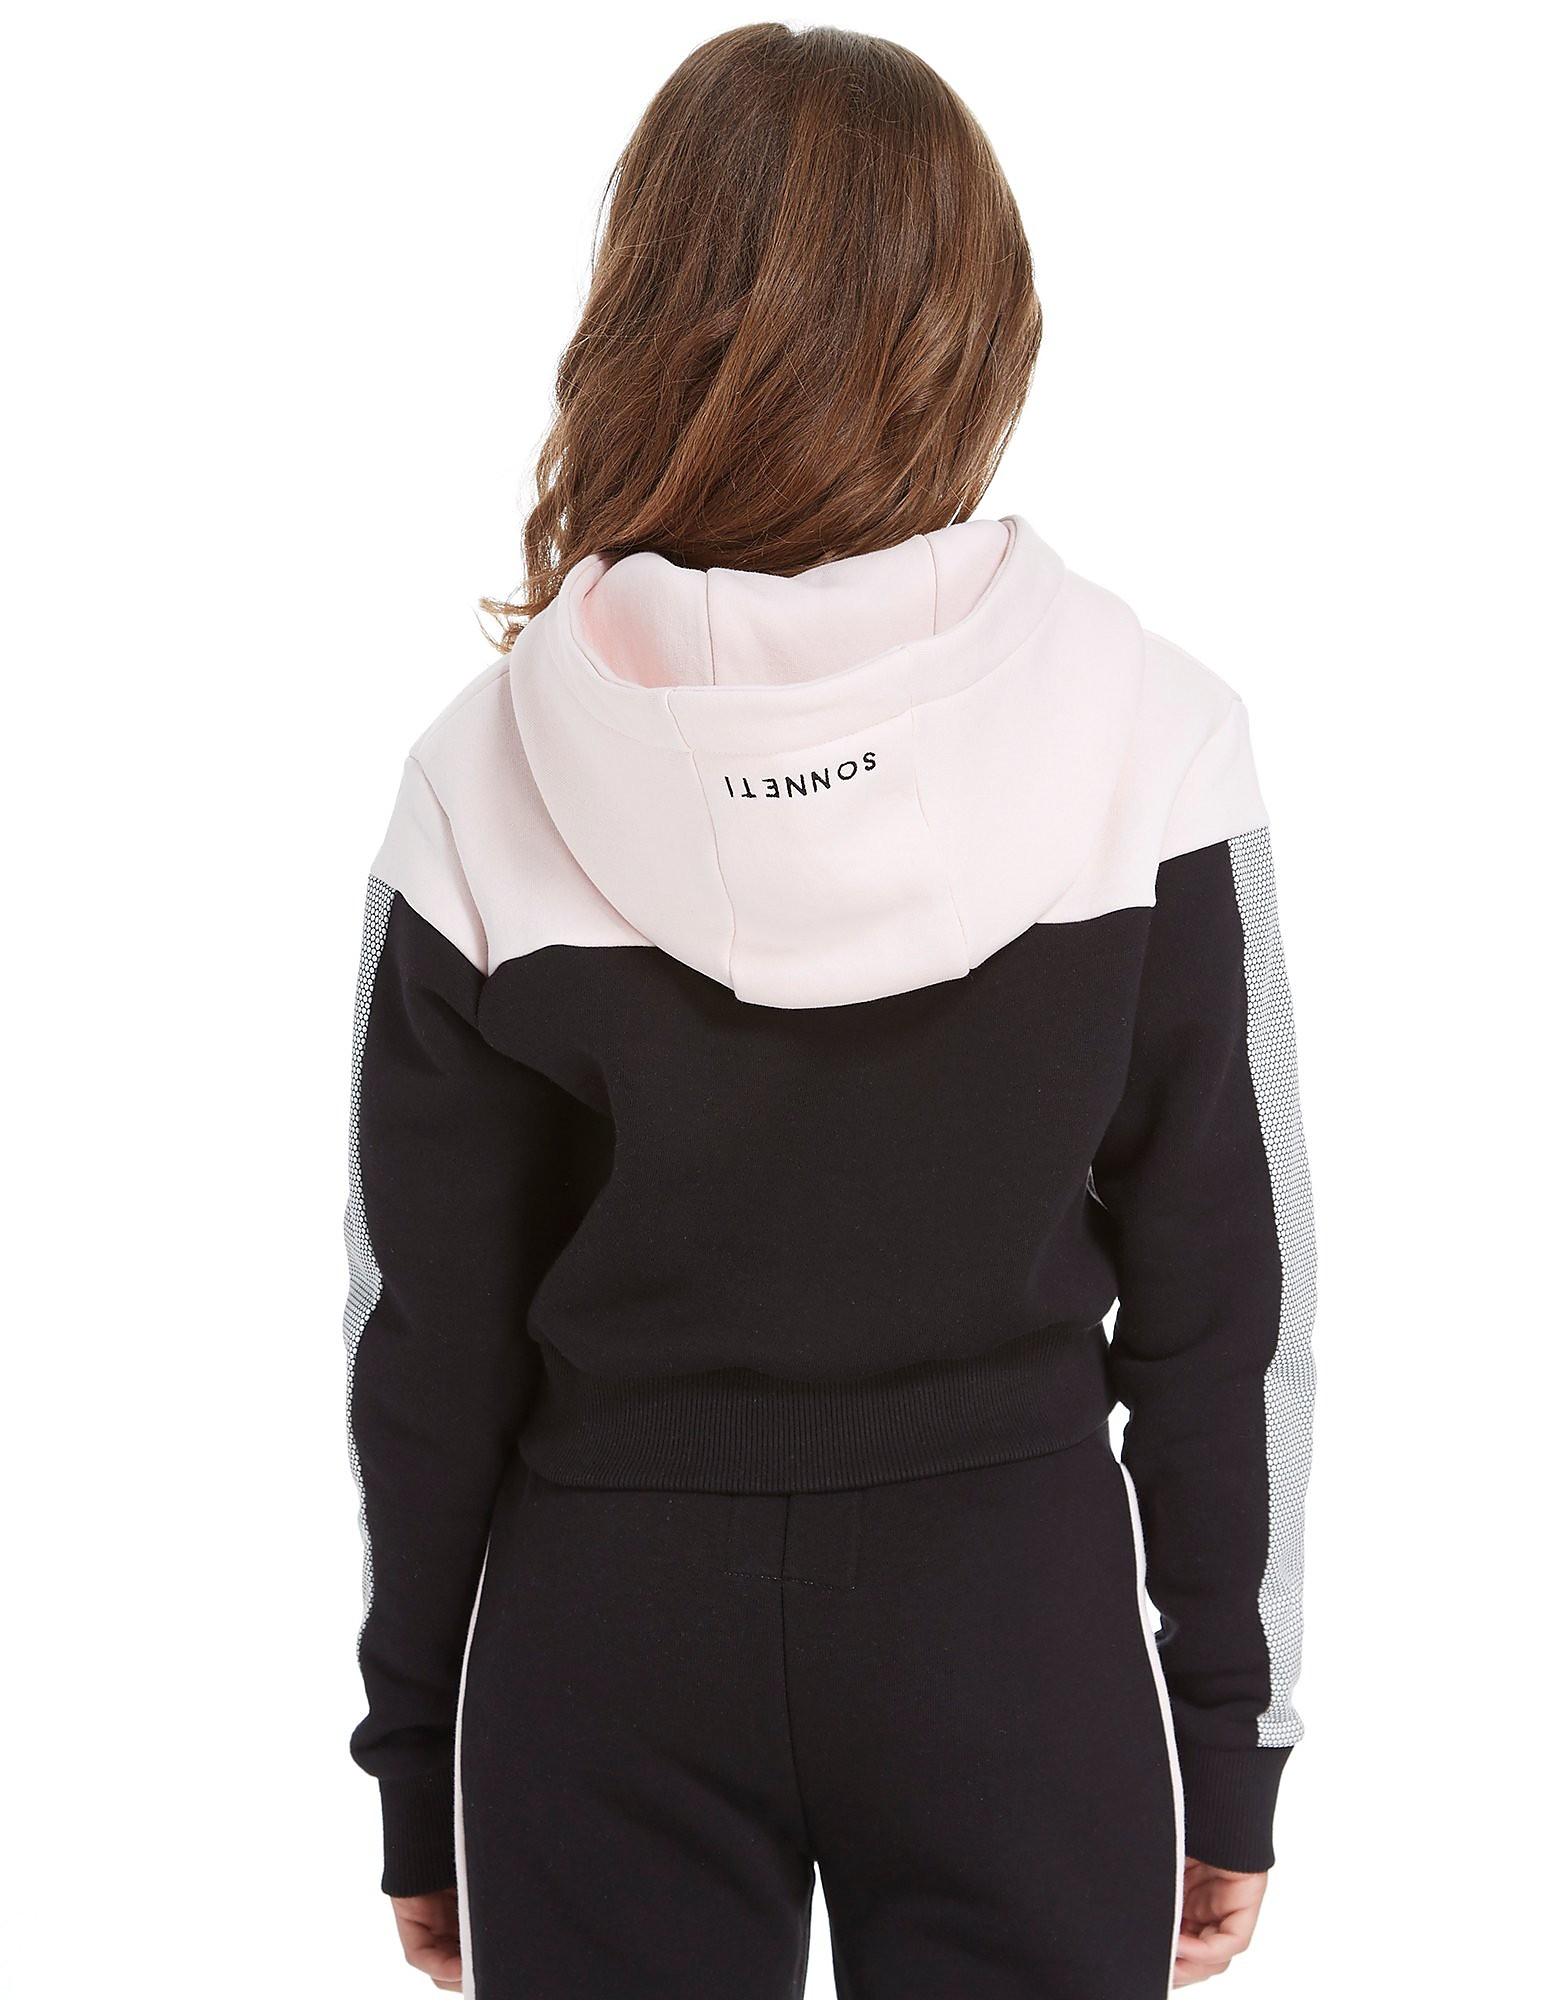 Sonneti Girls' Blocker Hoody Junior